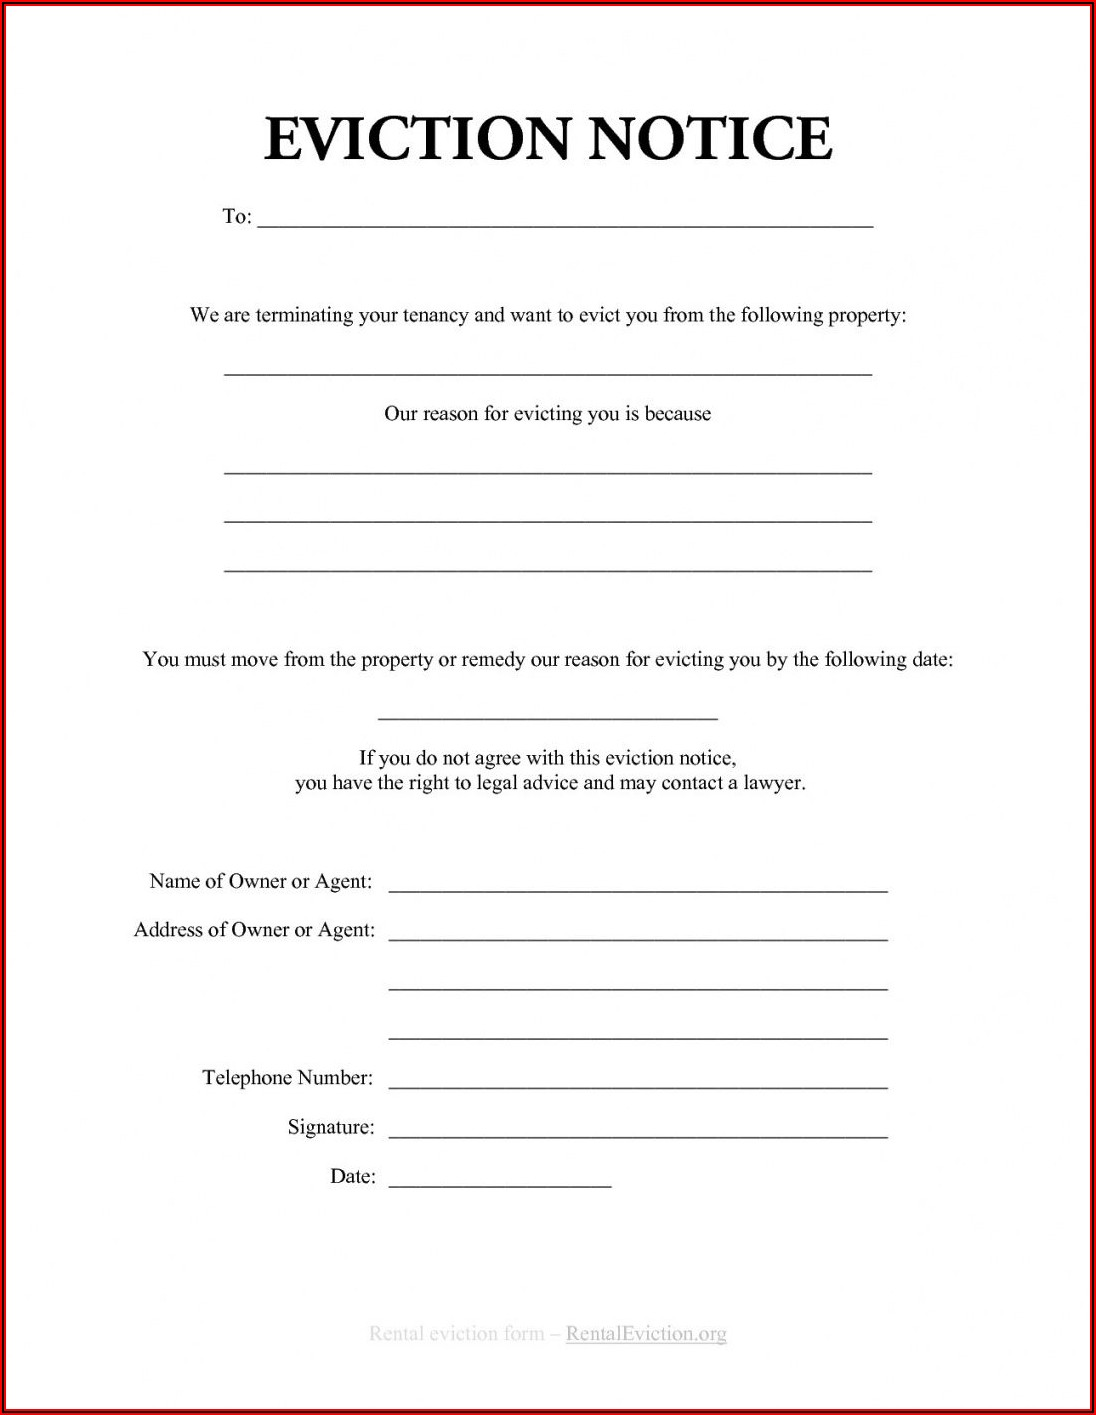 Template For Eviction Notice Uk